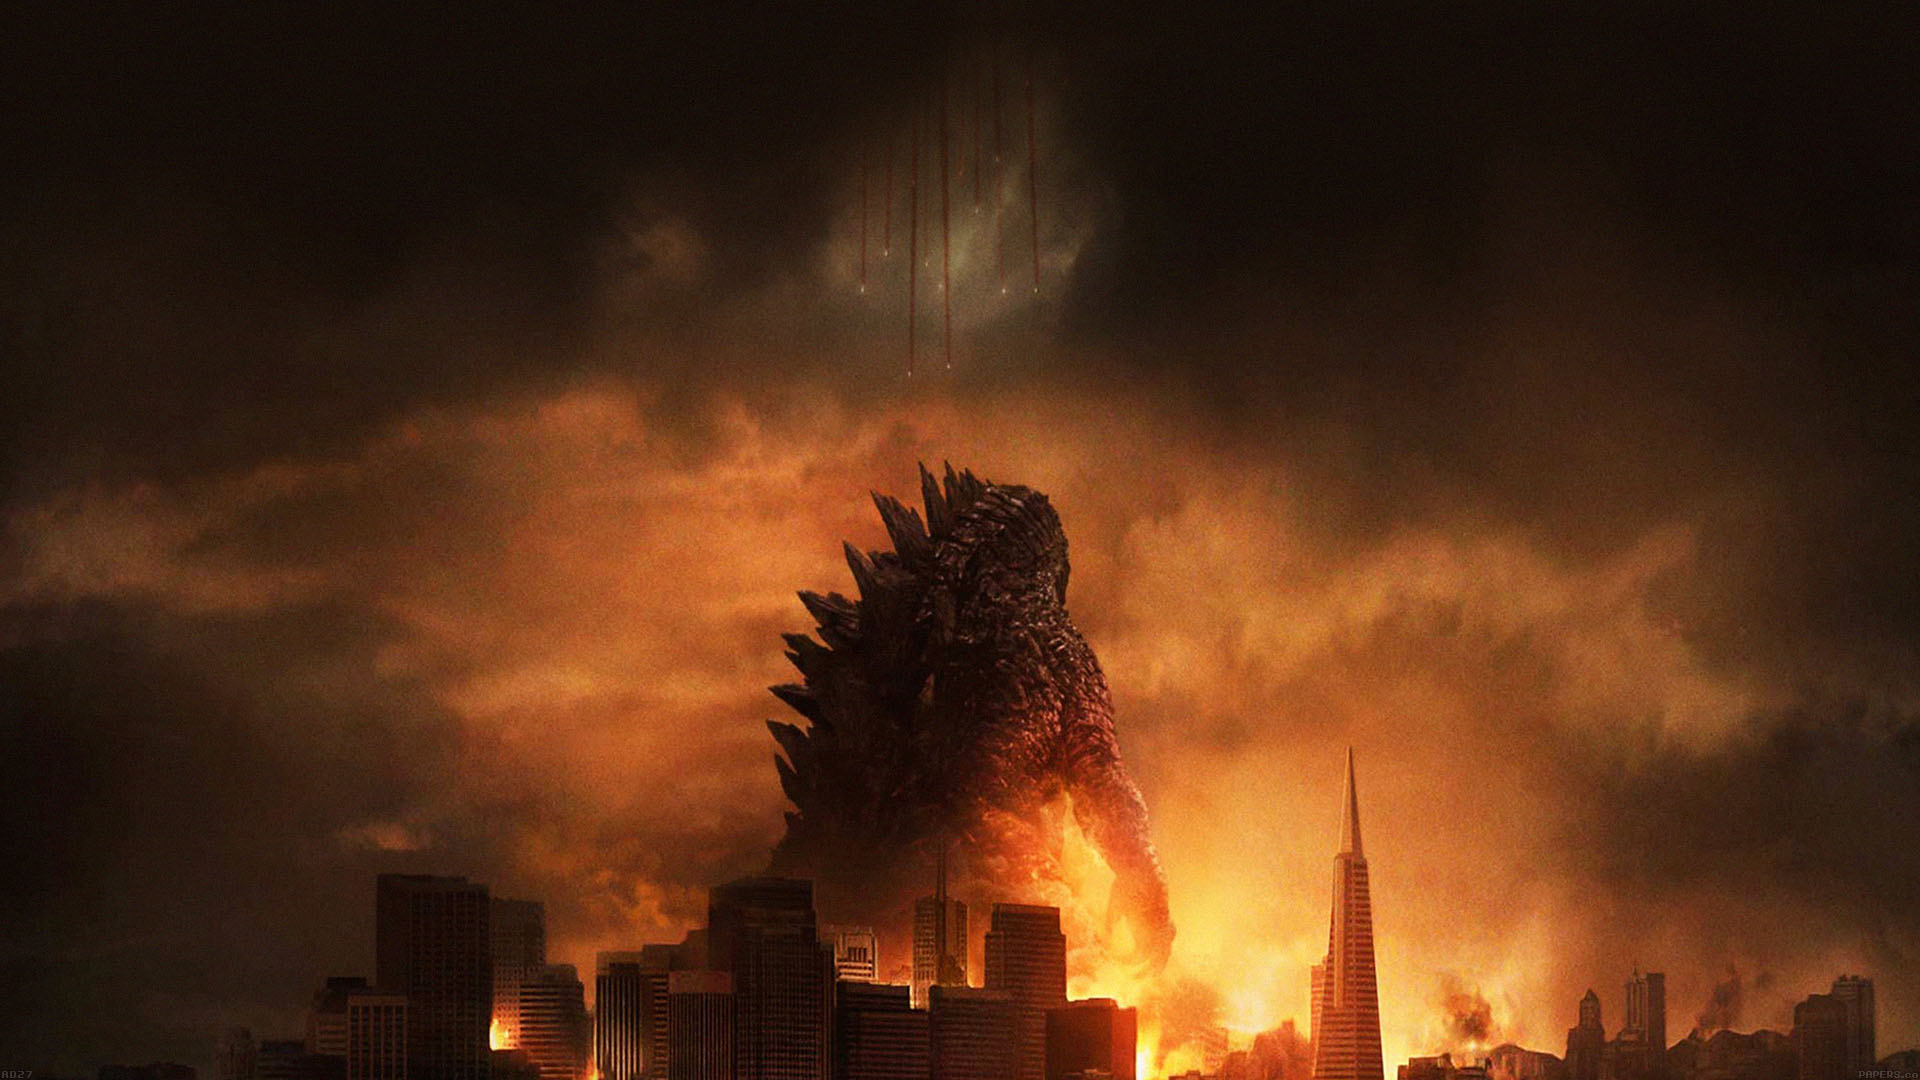 Cute Iphone Christmas Wallpapers Ad27 Godzilla Poster Film Papers Co